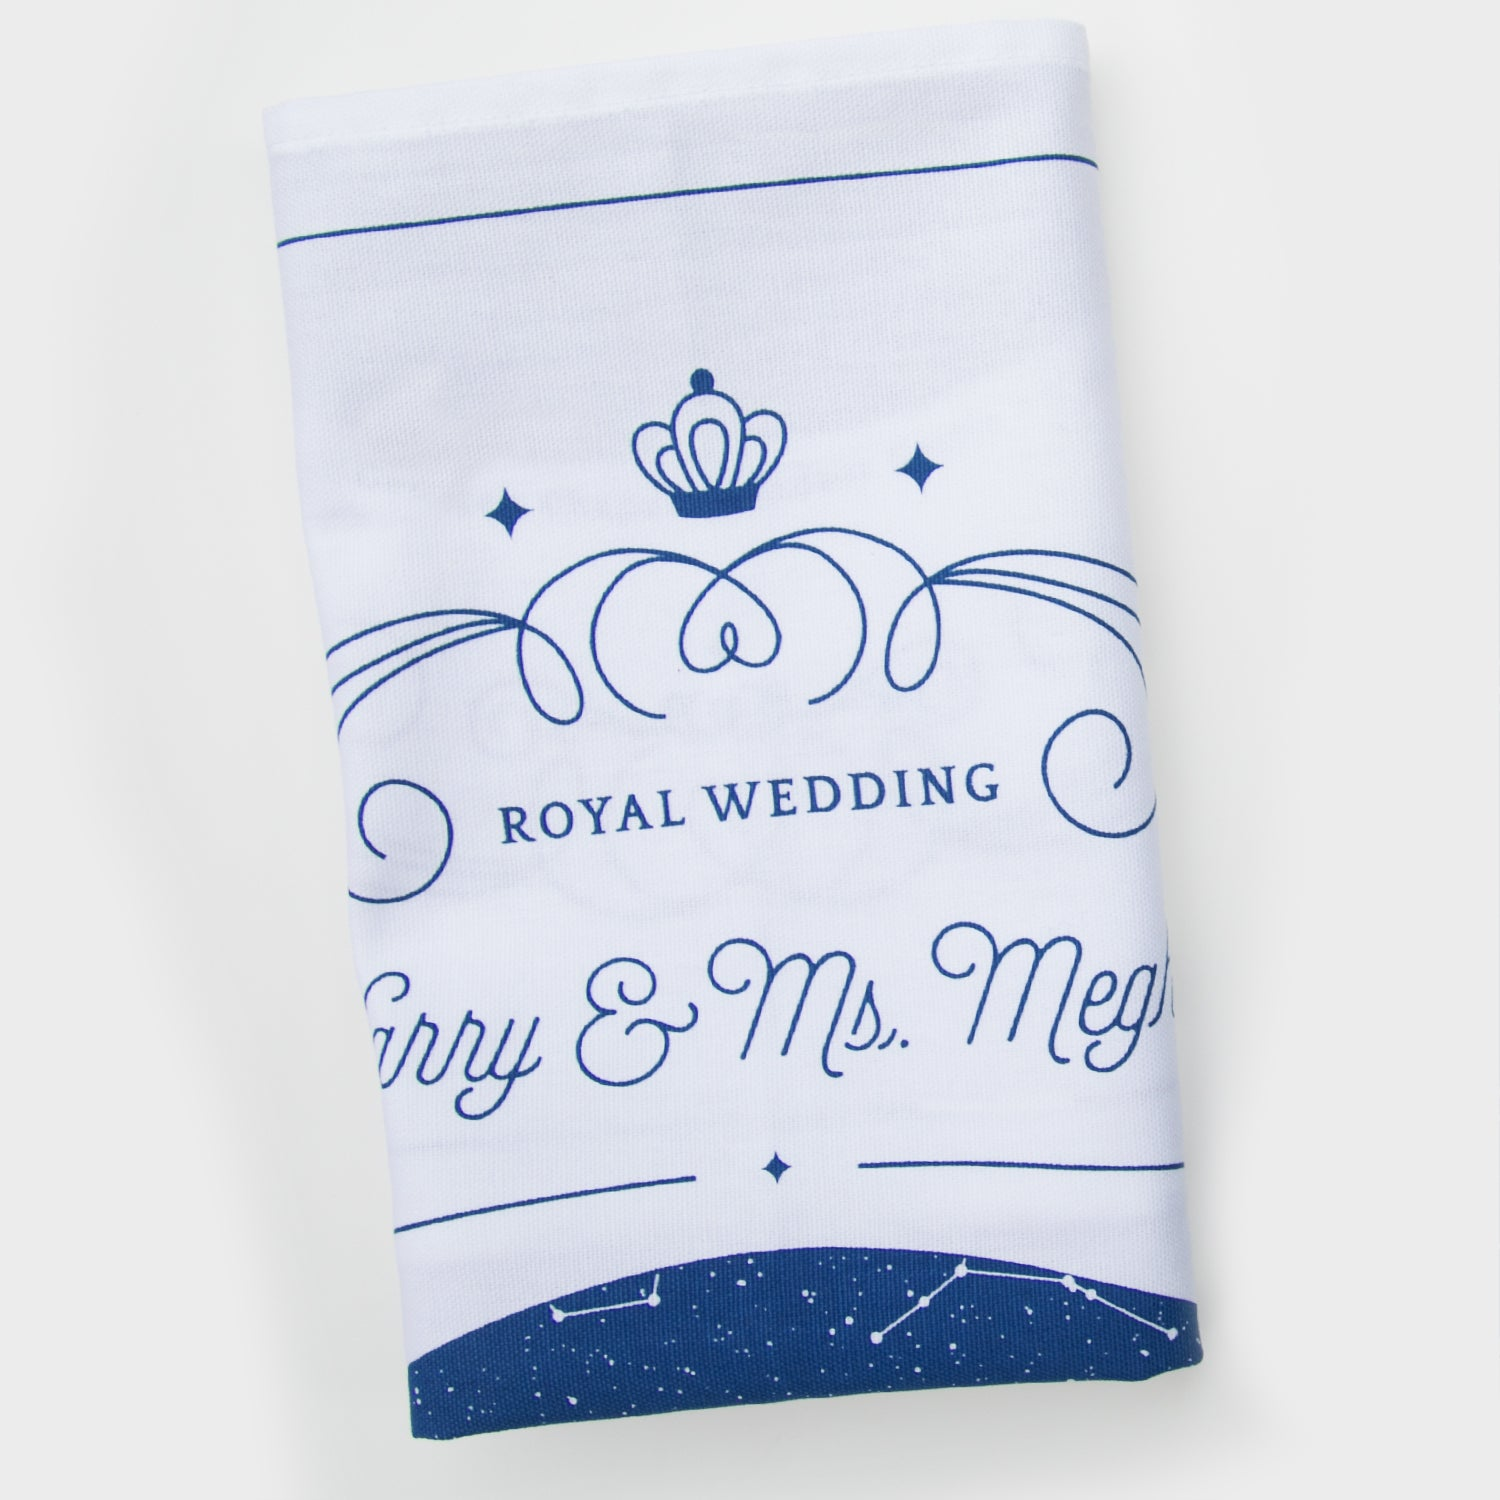 Blue and white Royal Wedding souvenir kitchen towel with star map